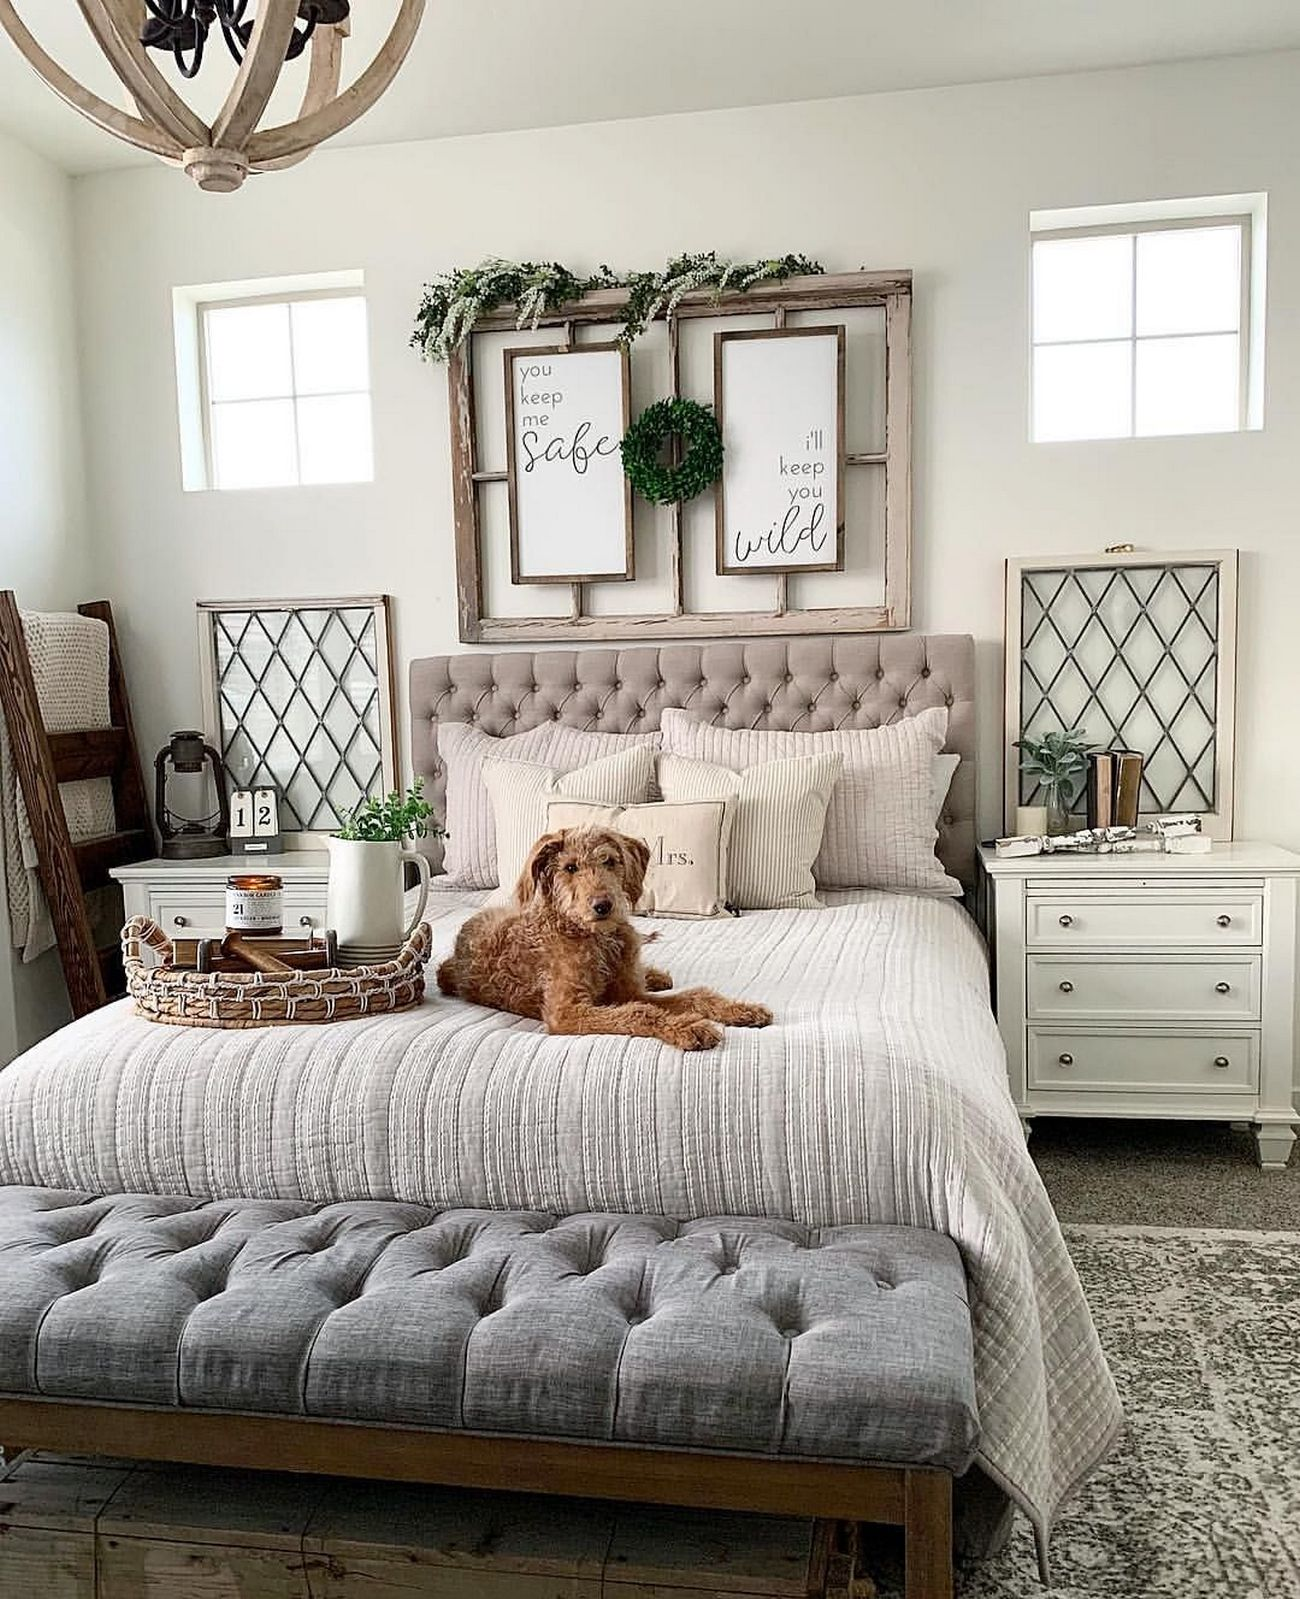 53 comfortable master bedroom decorating ideas for on unique contemporary bedroom design ideas for more inspiration id=37736